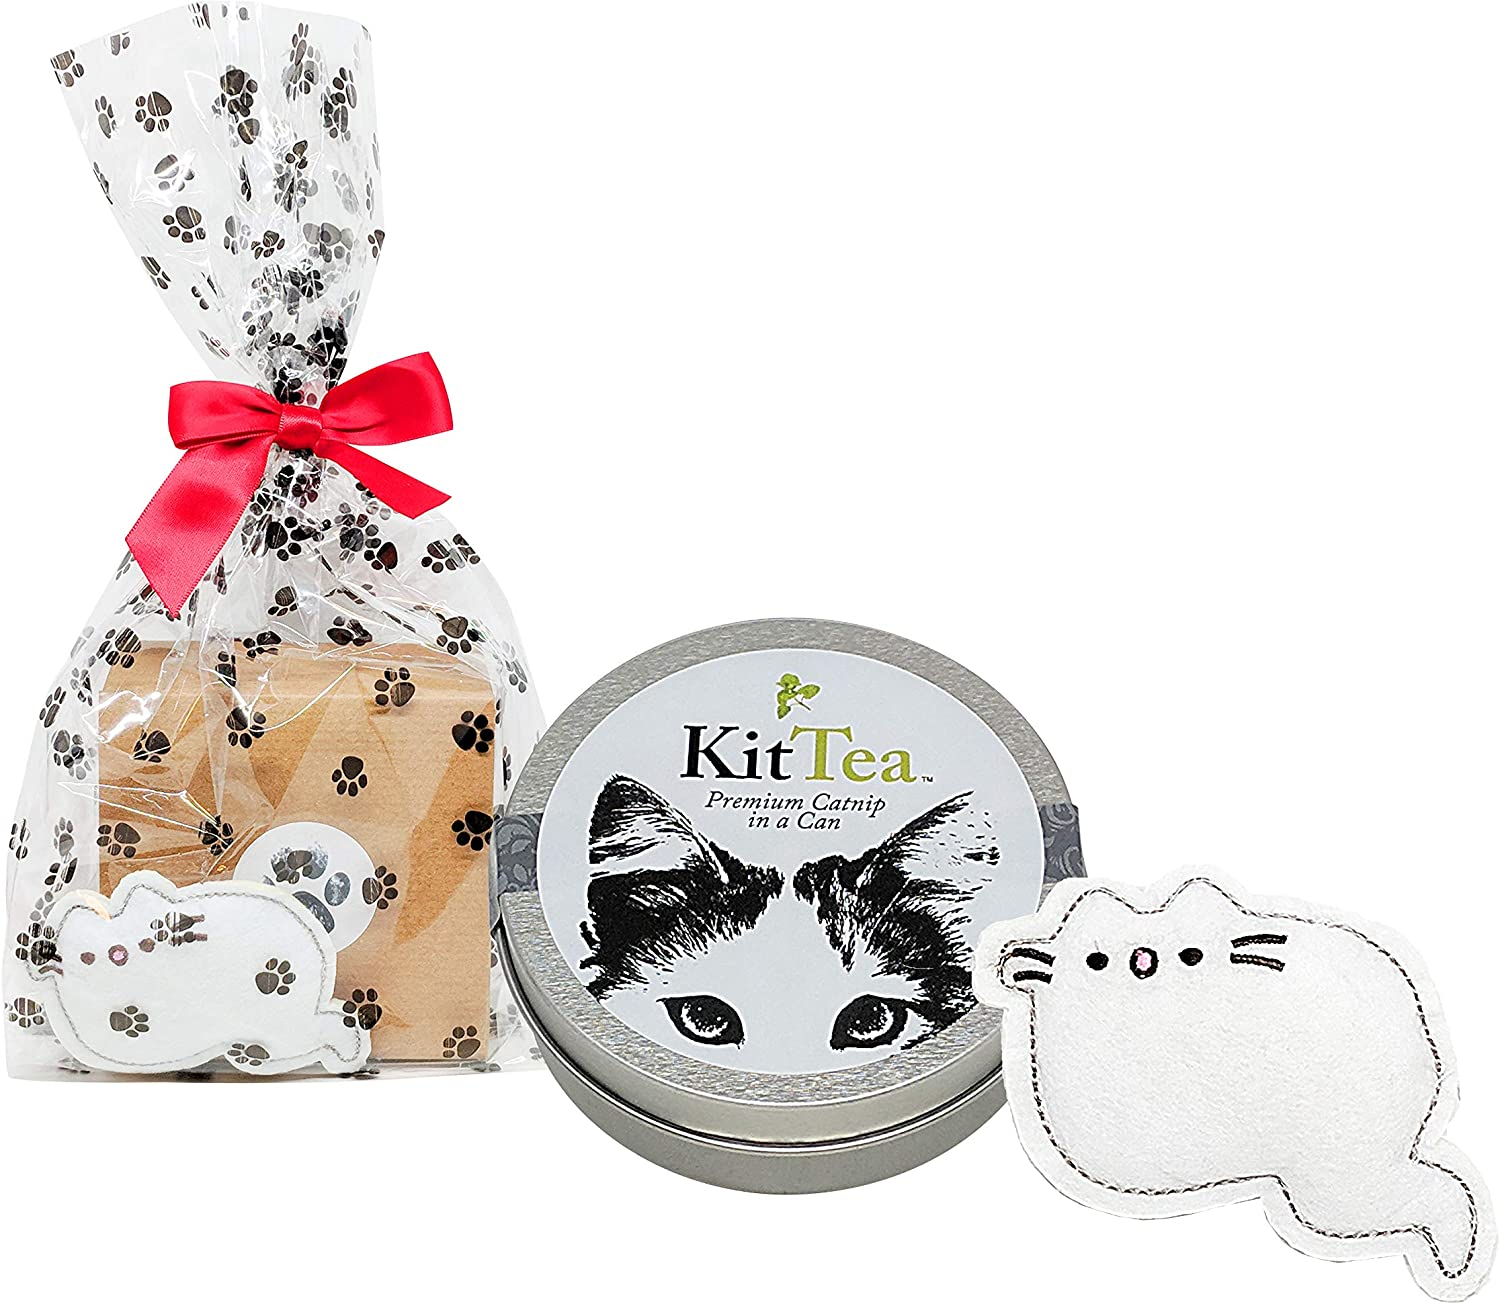 Pusheen Cat Toy and Can of Premium Catnip  Giftwrapped Cat Gift